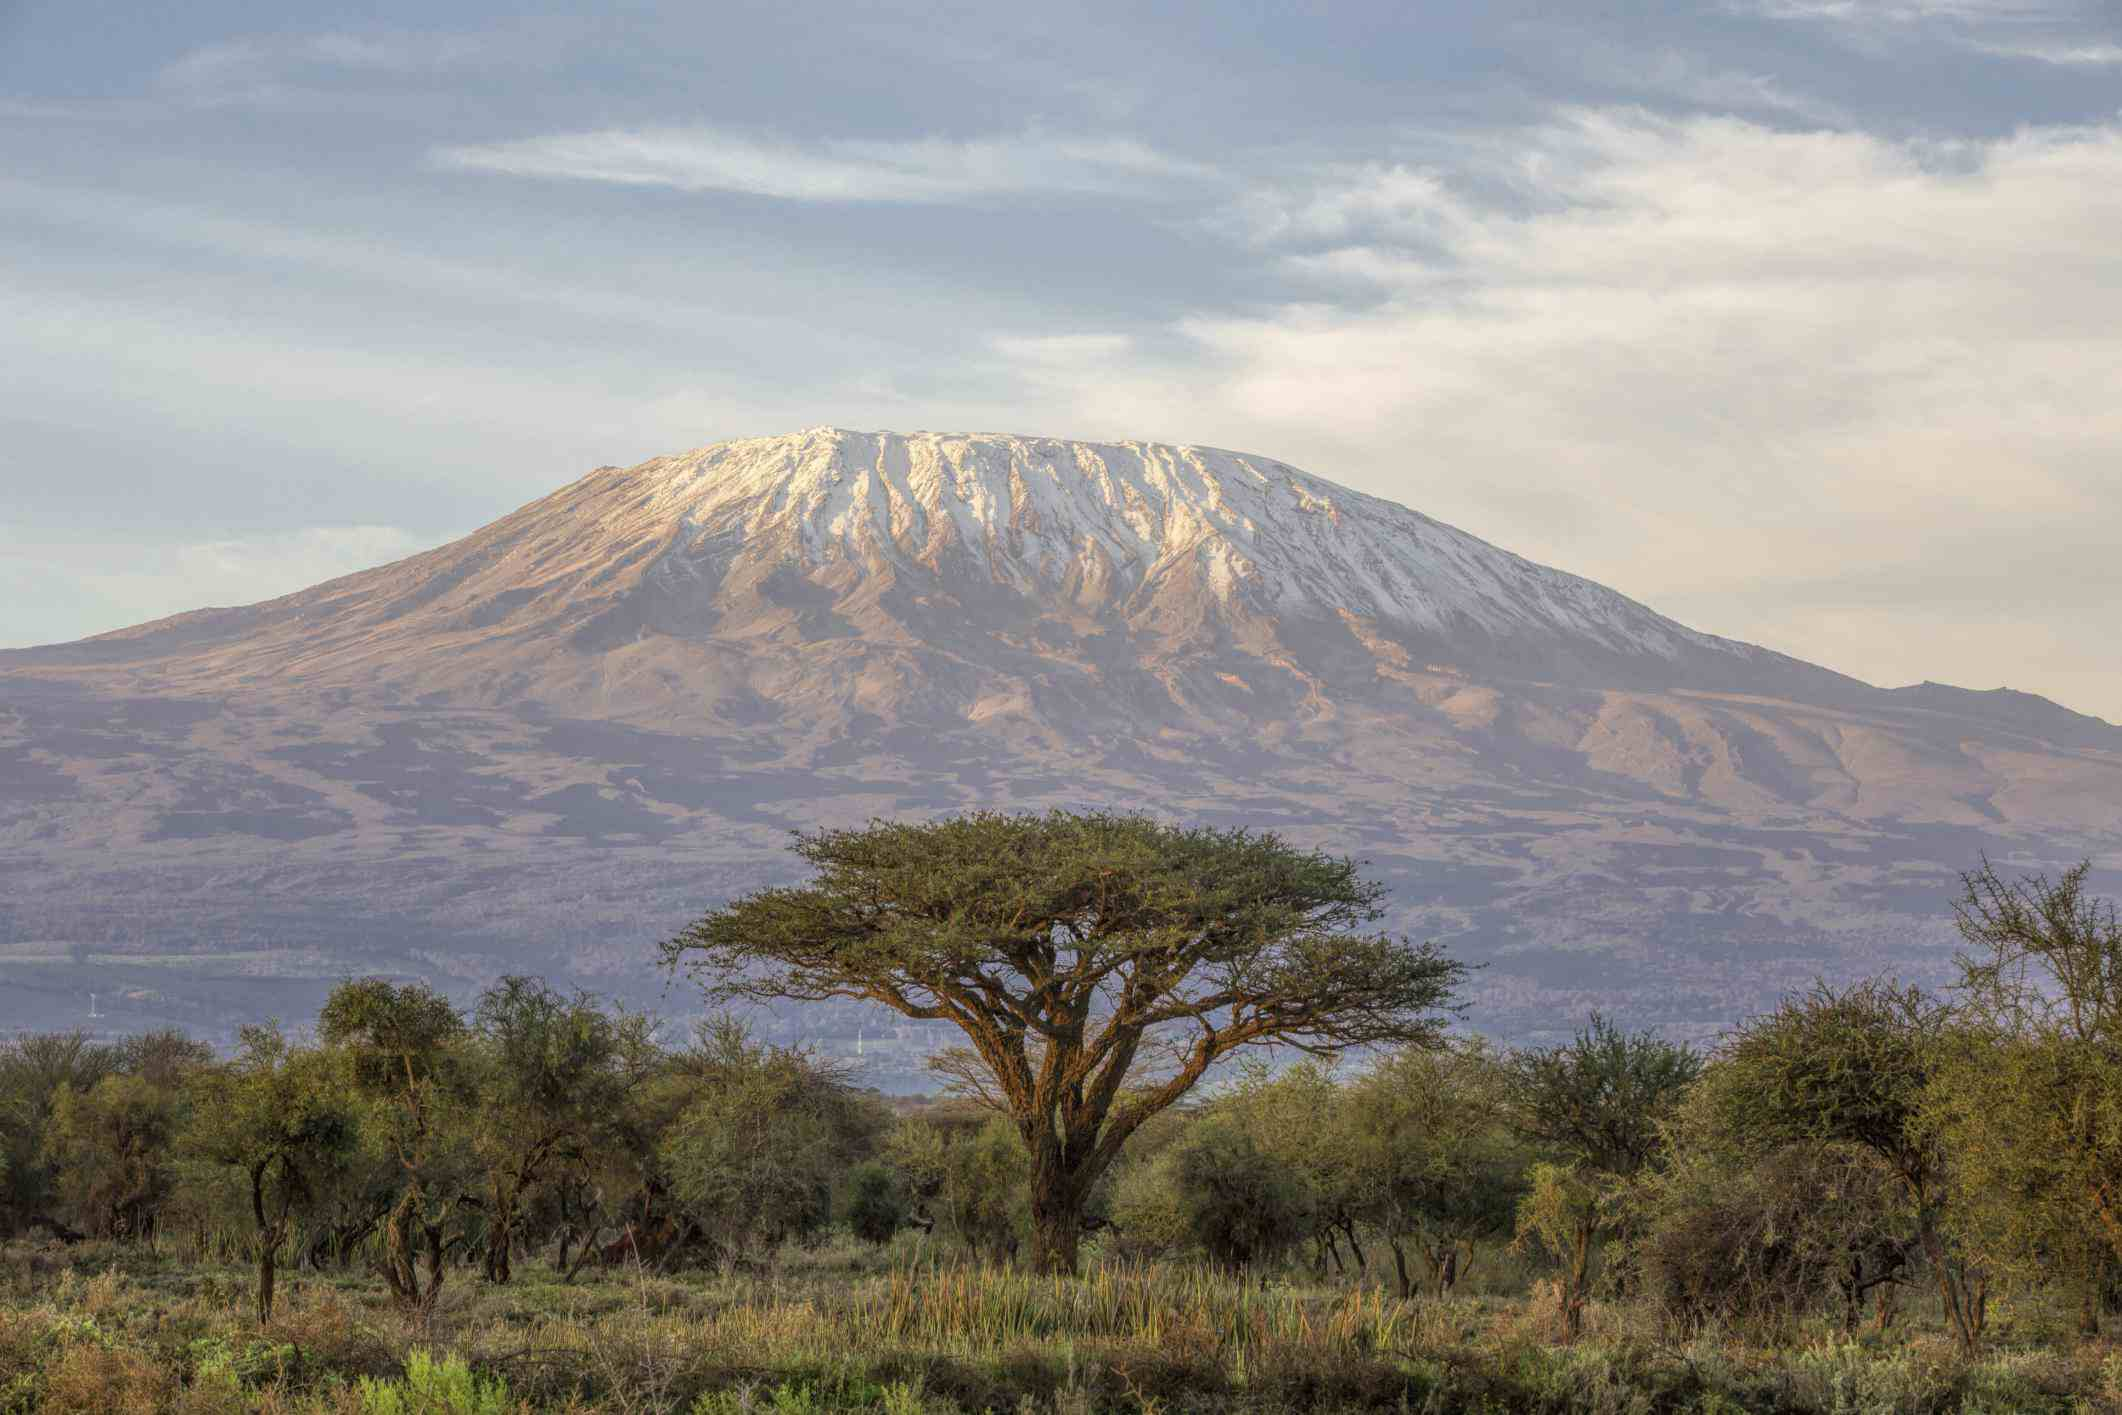 Mt Kilimanjaro and Acacia - in the morning